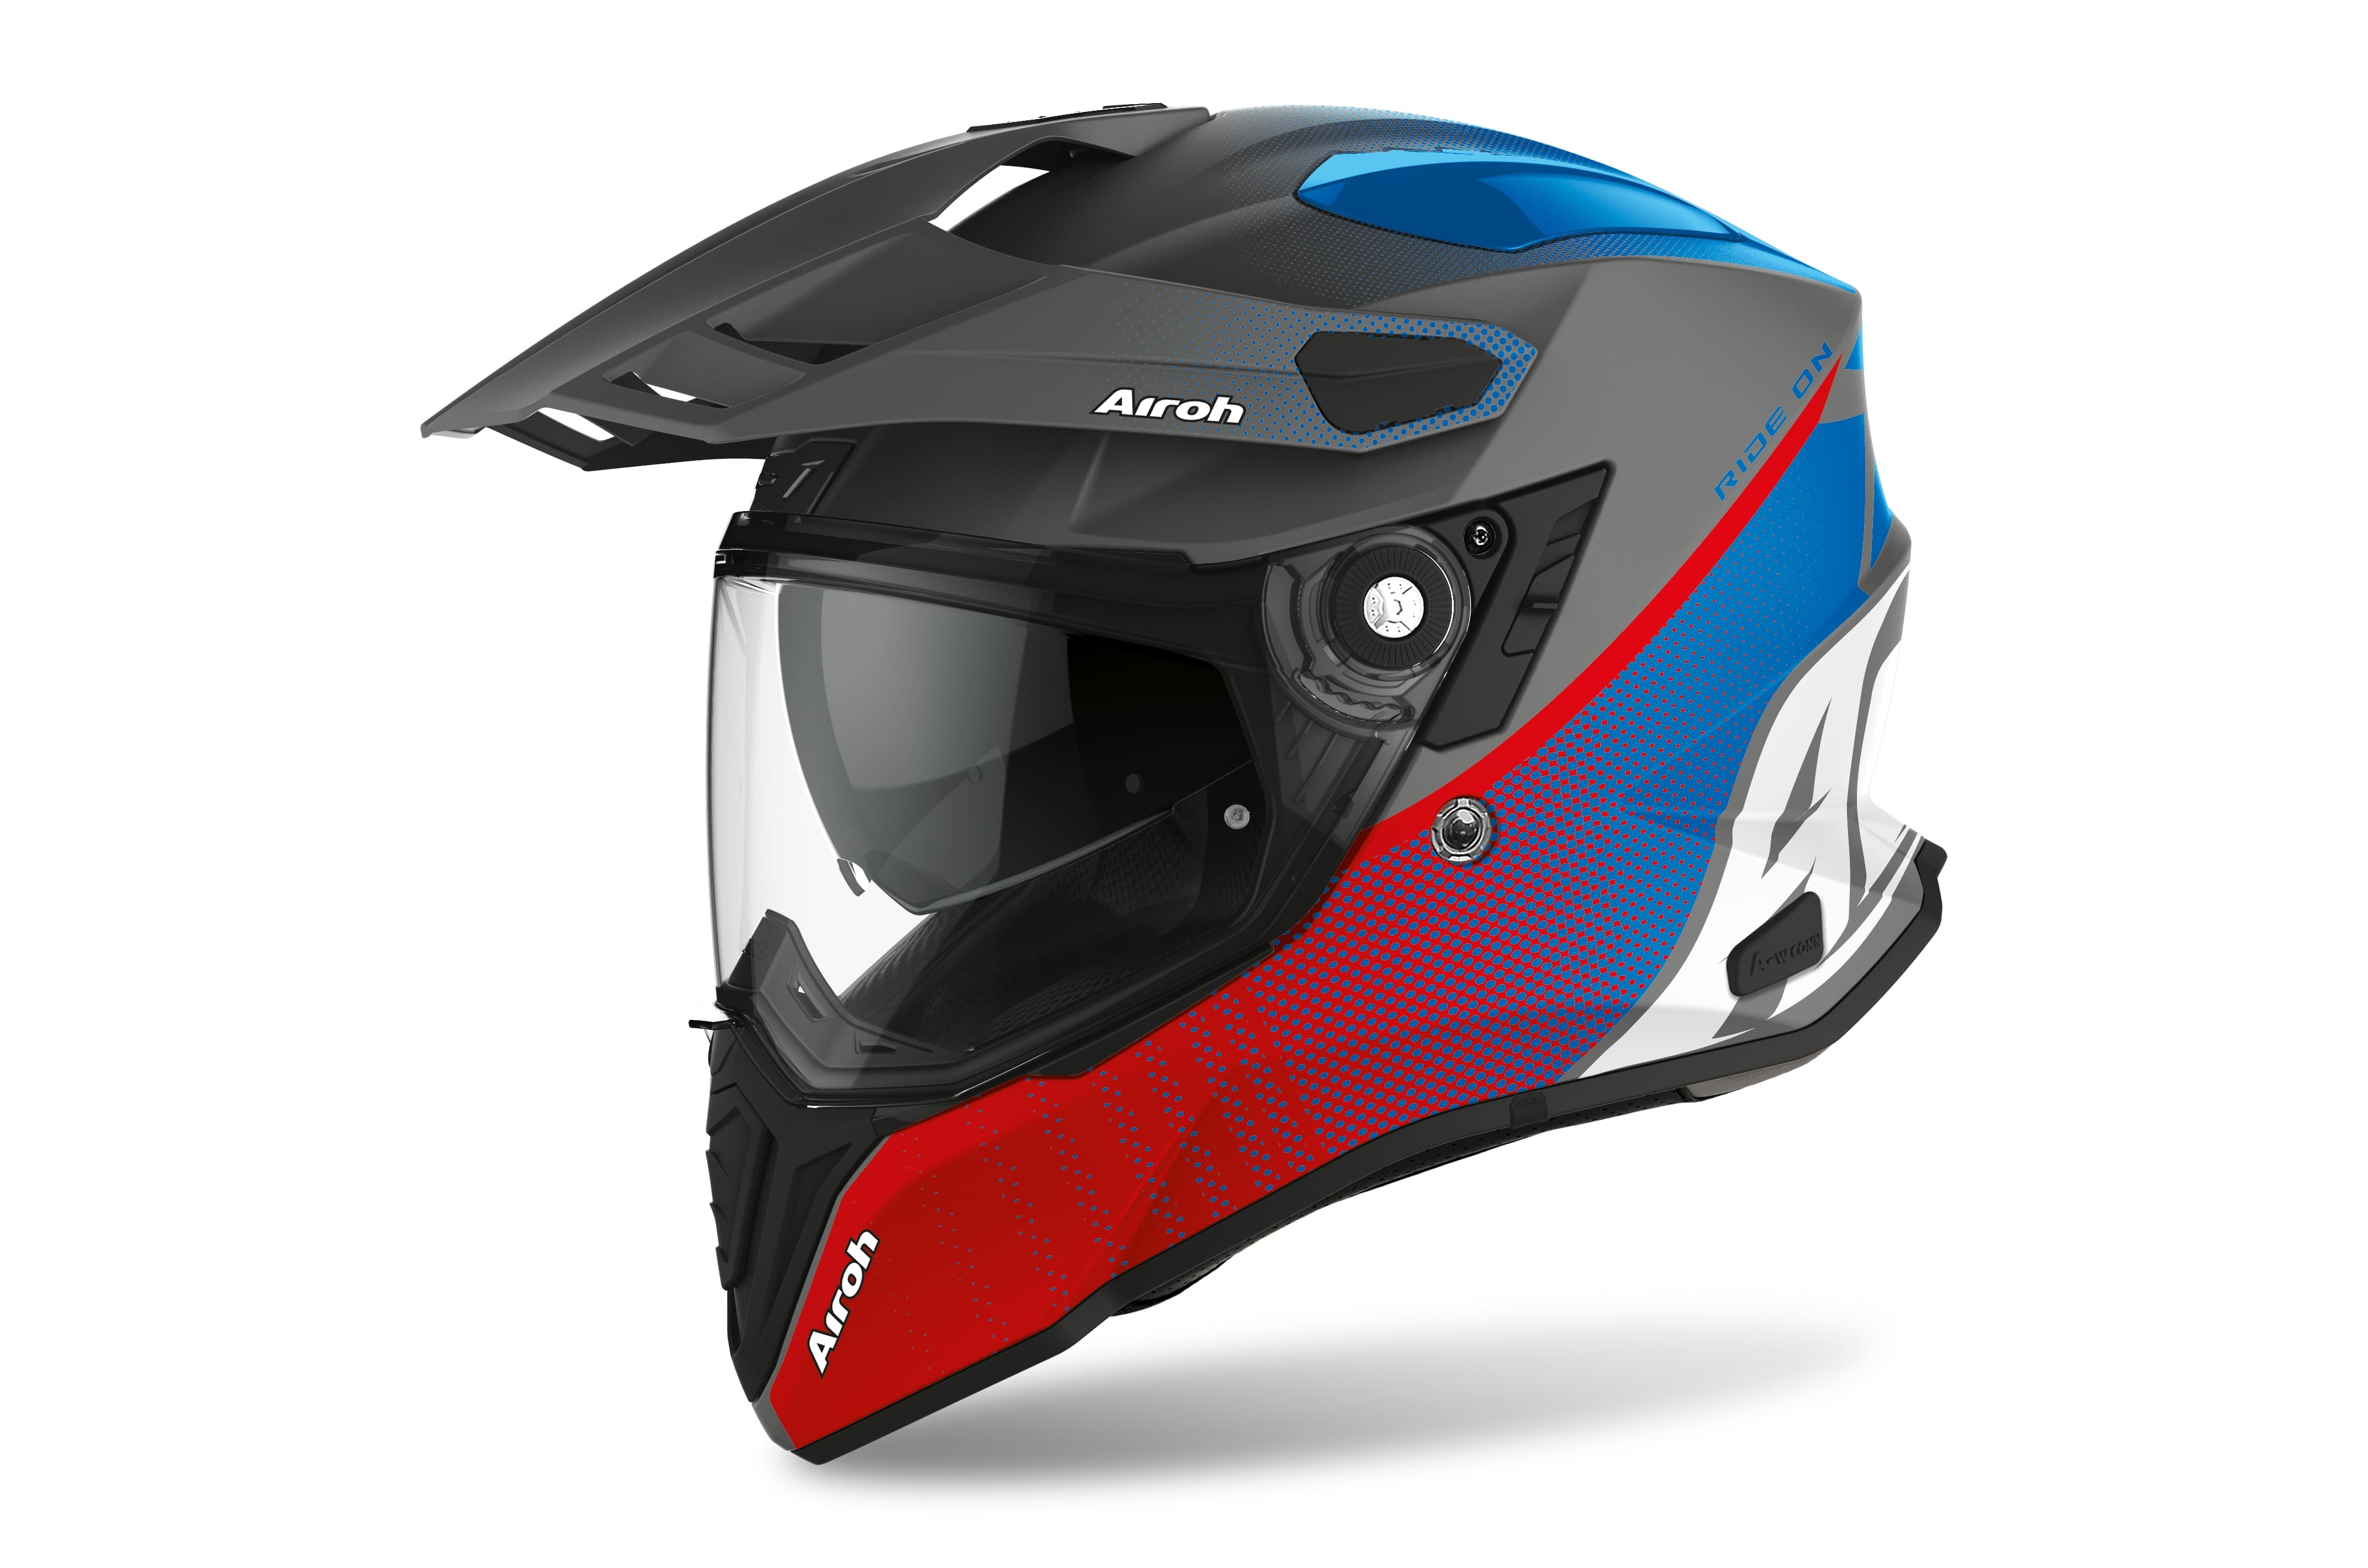 Airoh Casco Integrale COMMANDER PROGRESS Nero Blu Rosso Opaco CMP29